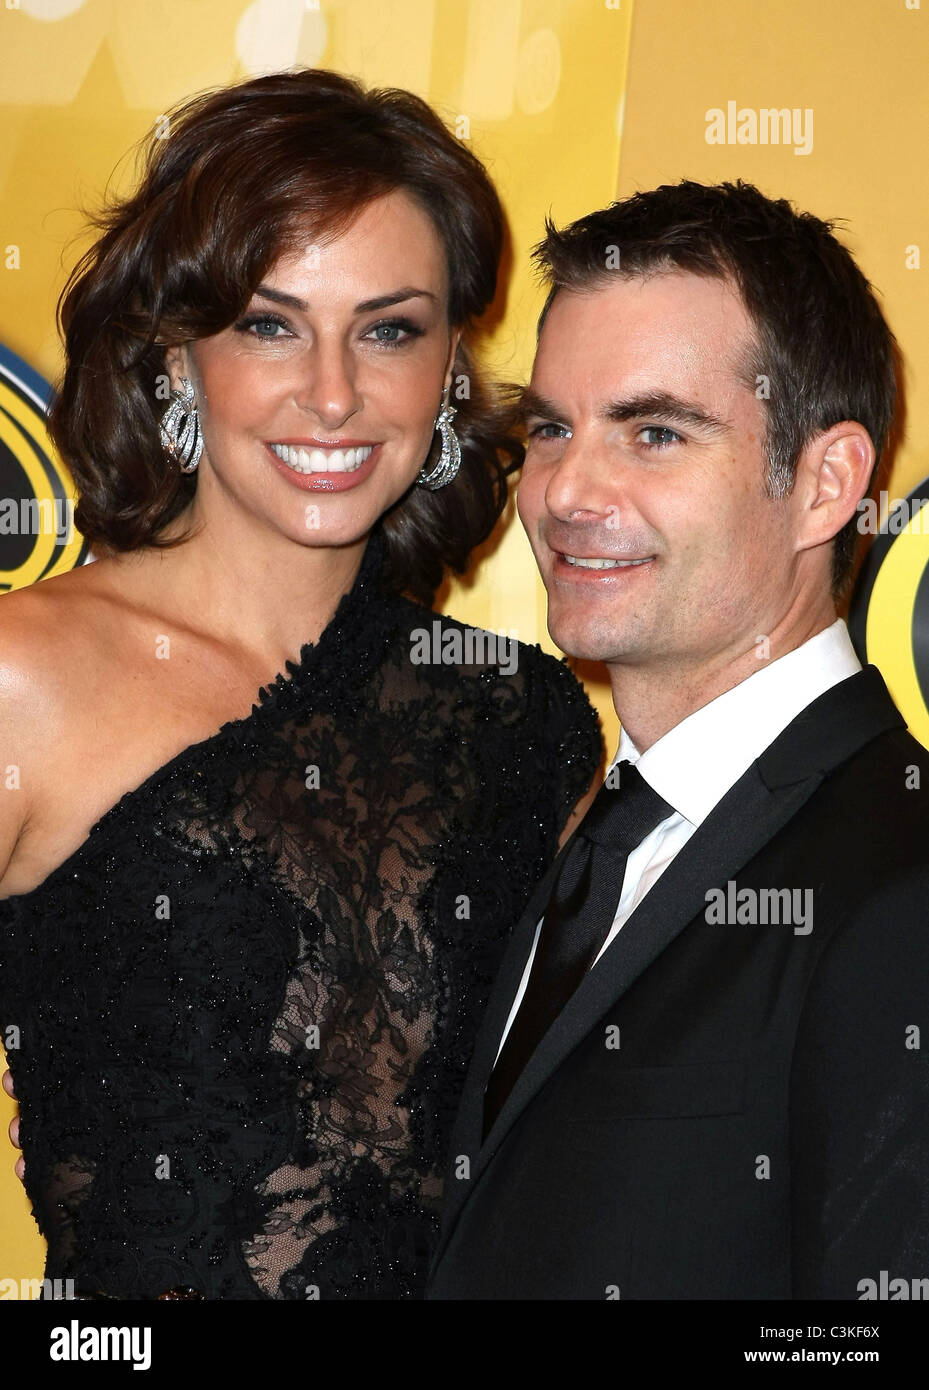 Jeff Gordon And His Wife Ingrid Vandebosch Nascar Sprint Cup Series Stock Photo Alamy